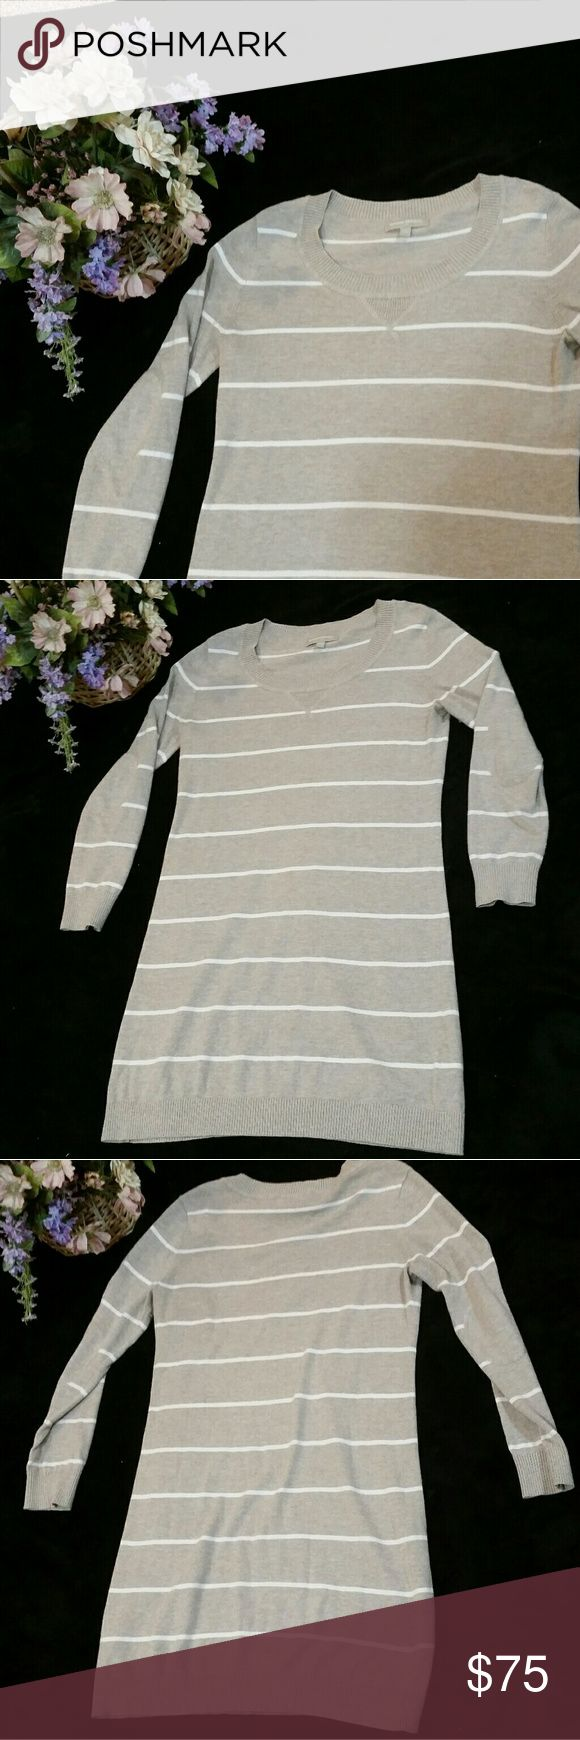 Banana Republic Beige & Ivory Stripe Sweater Dress Banana Republic beige & ivory striped sweater dress. Has beautiful detail of solid beige elbow patches. Stretchy & cozy! Excellent used condition. Size small. Banana Republic Dresses Long Sleeve